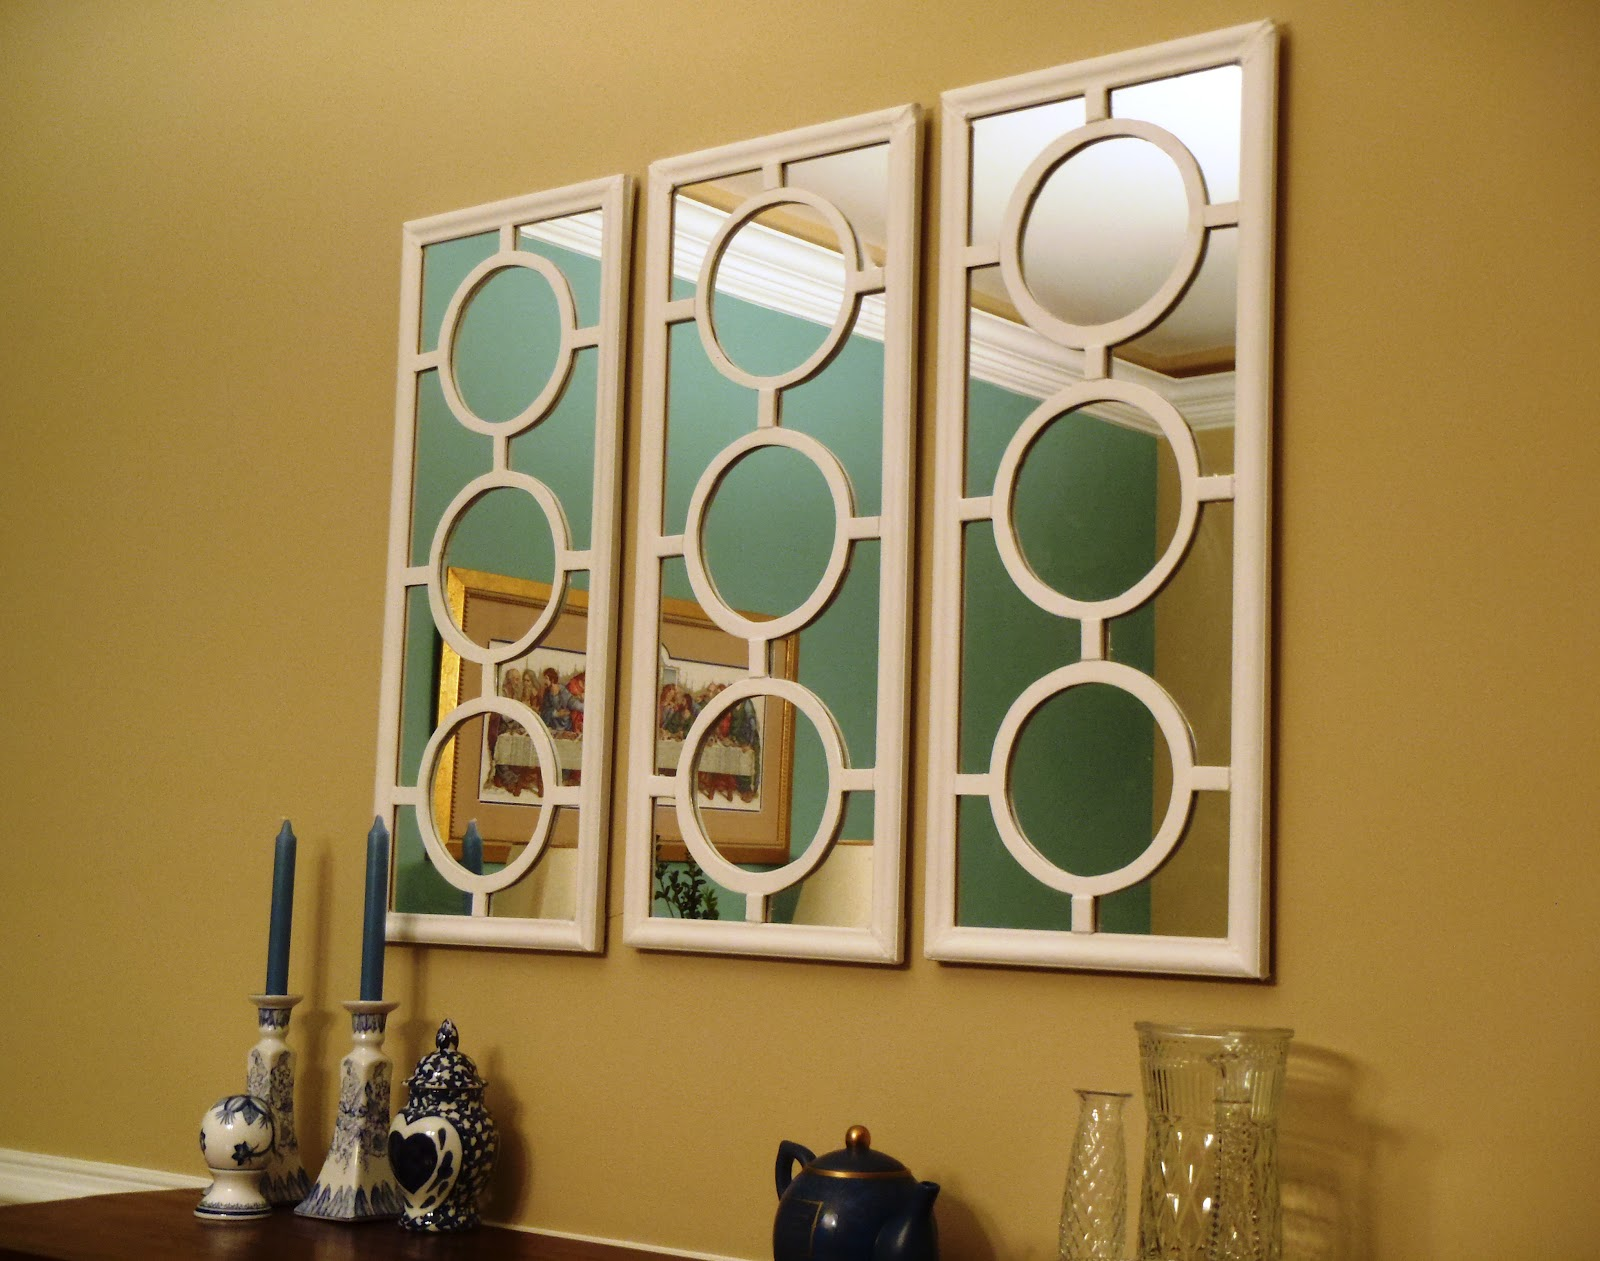 Lazy liz on less dining wall mirror decor for Decor mirror